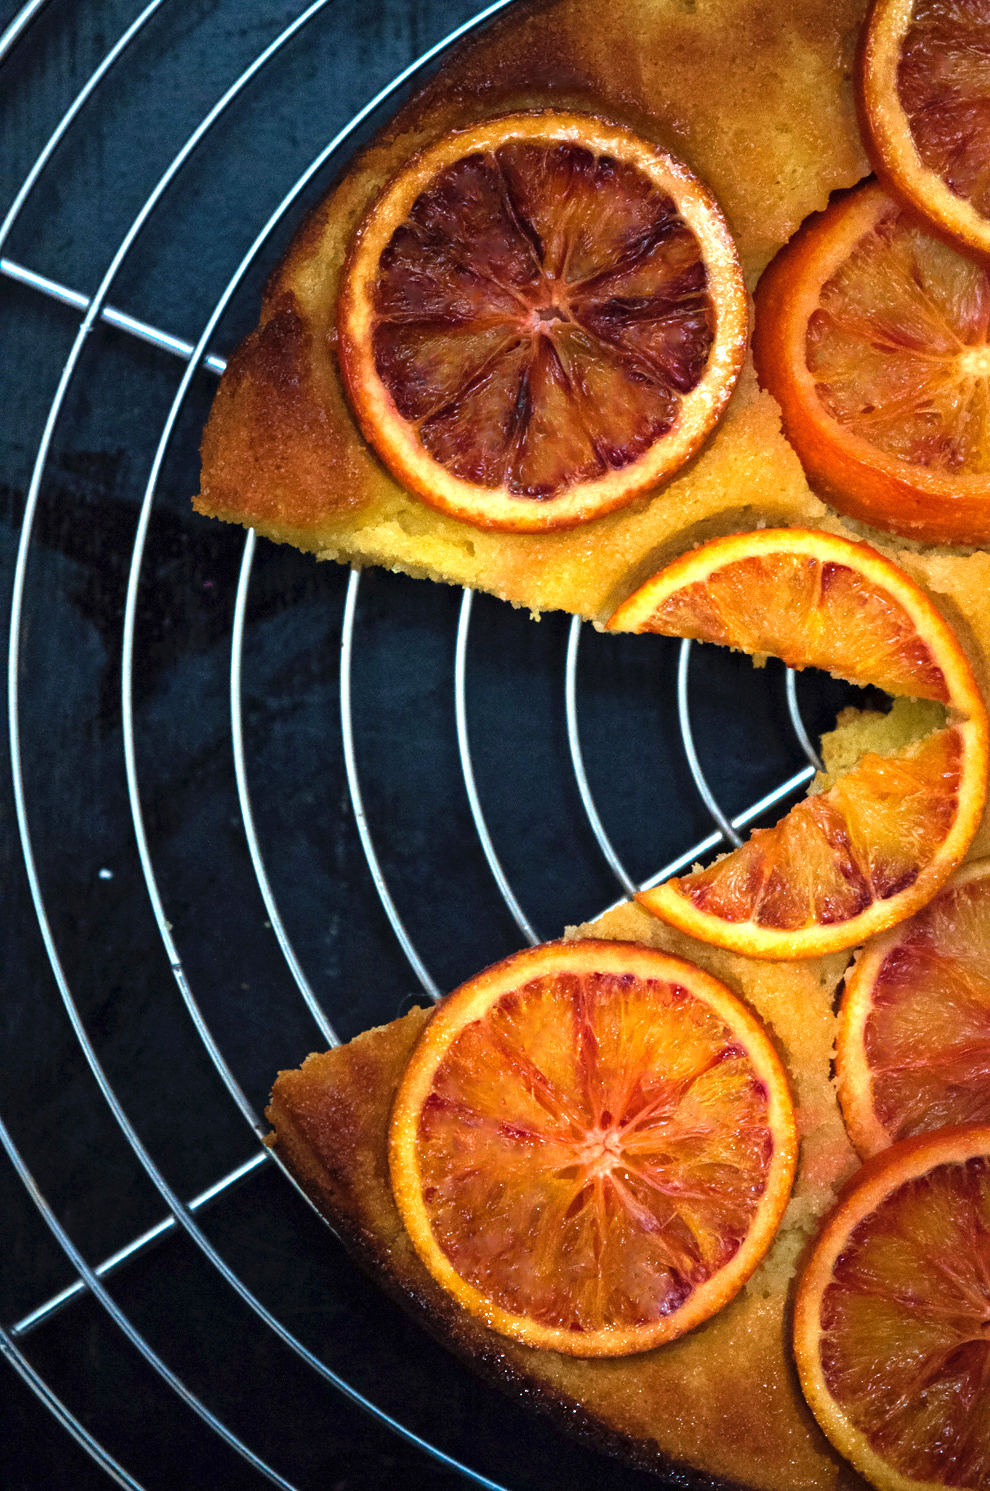 Blood orange, requeson and polenta cake | Monica R. Goya